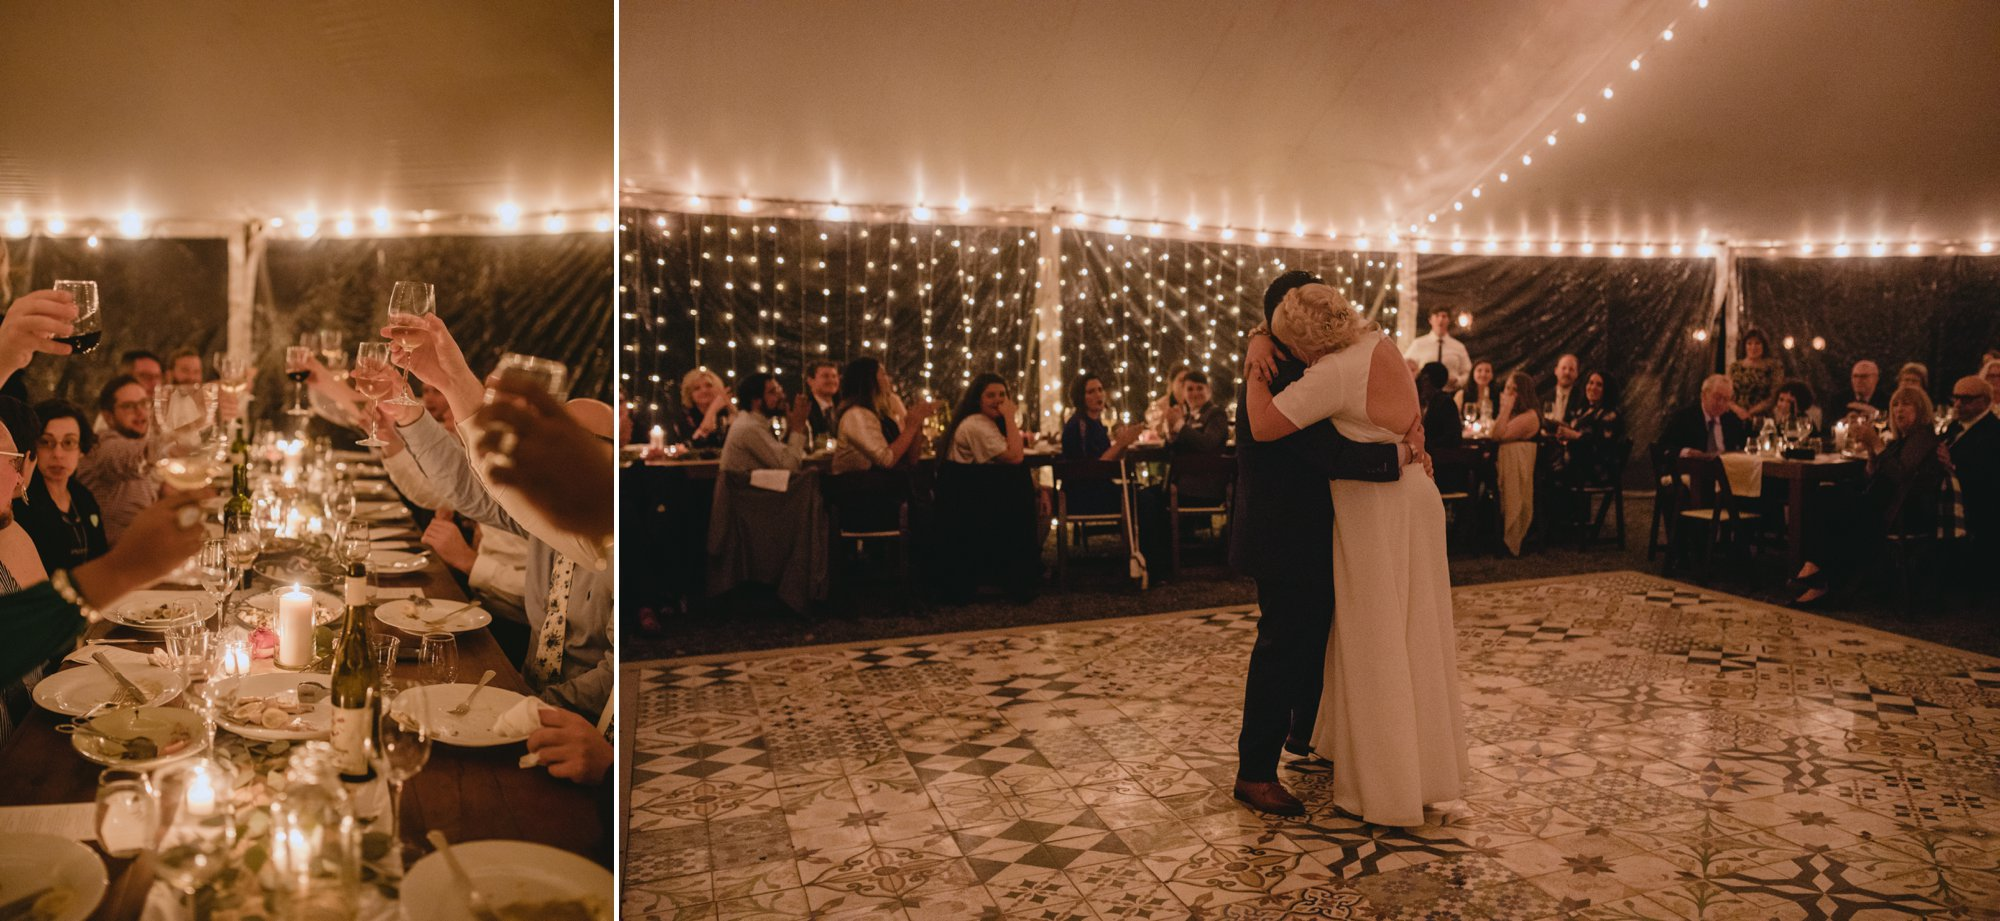 October Jewish lesbian wedding at Foxfire Mountain House in Upstate New York. First dance.